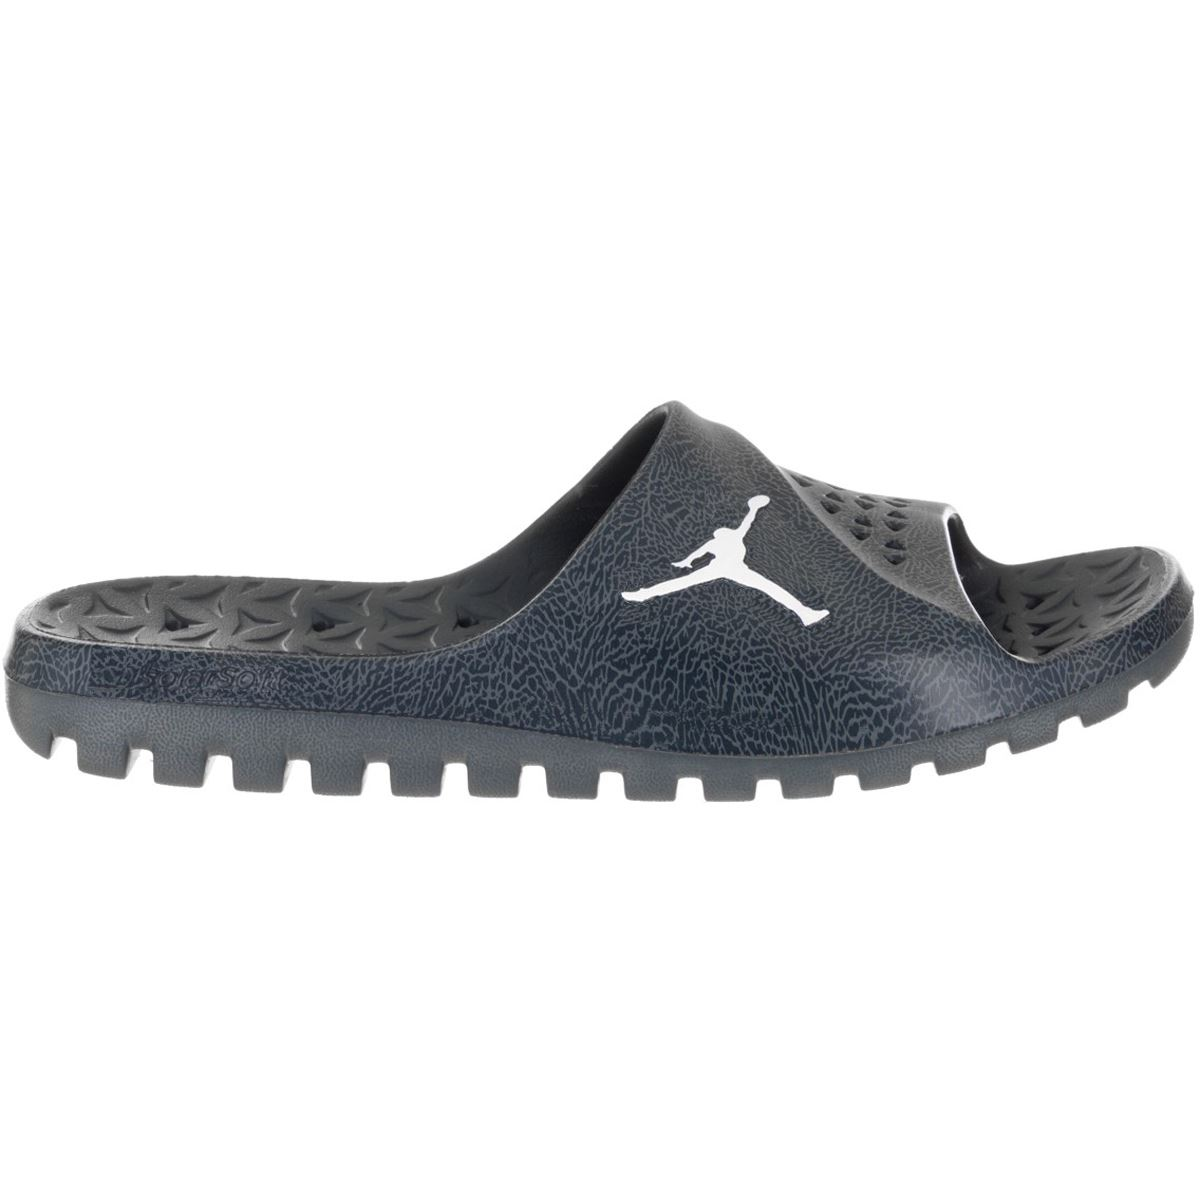 1afa246e0d0 Description: Ideal for before and after practice or the game, the navy  Jordan Super.Fly Team 2 Graphic men's ...